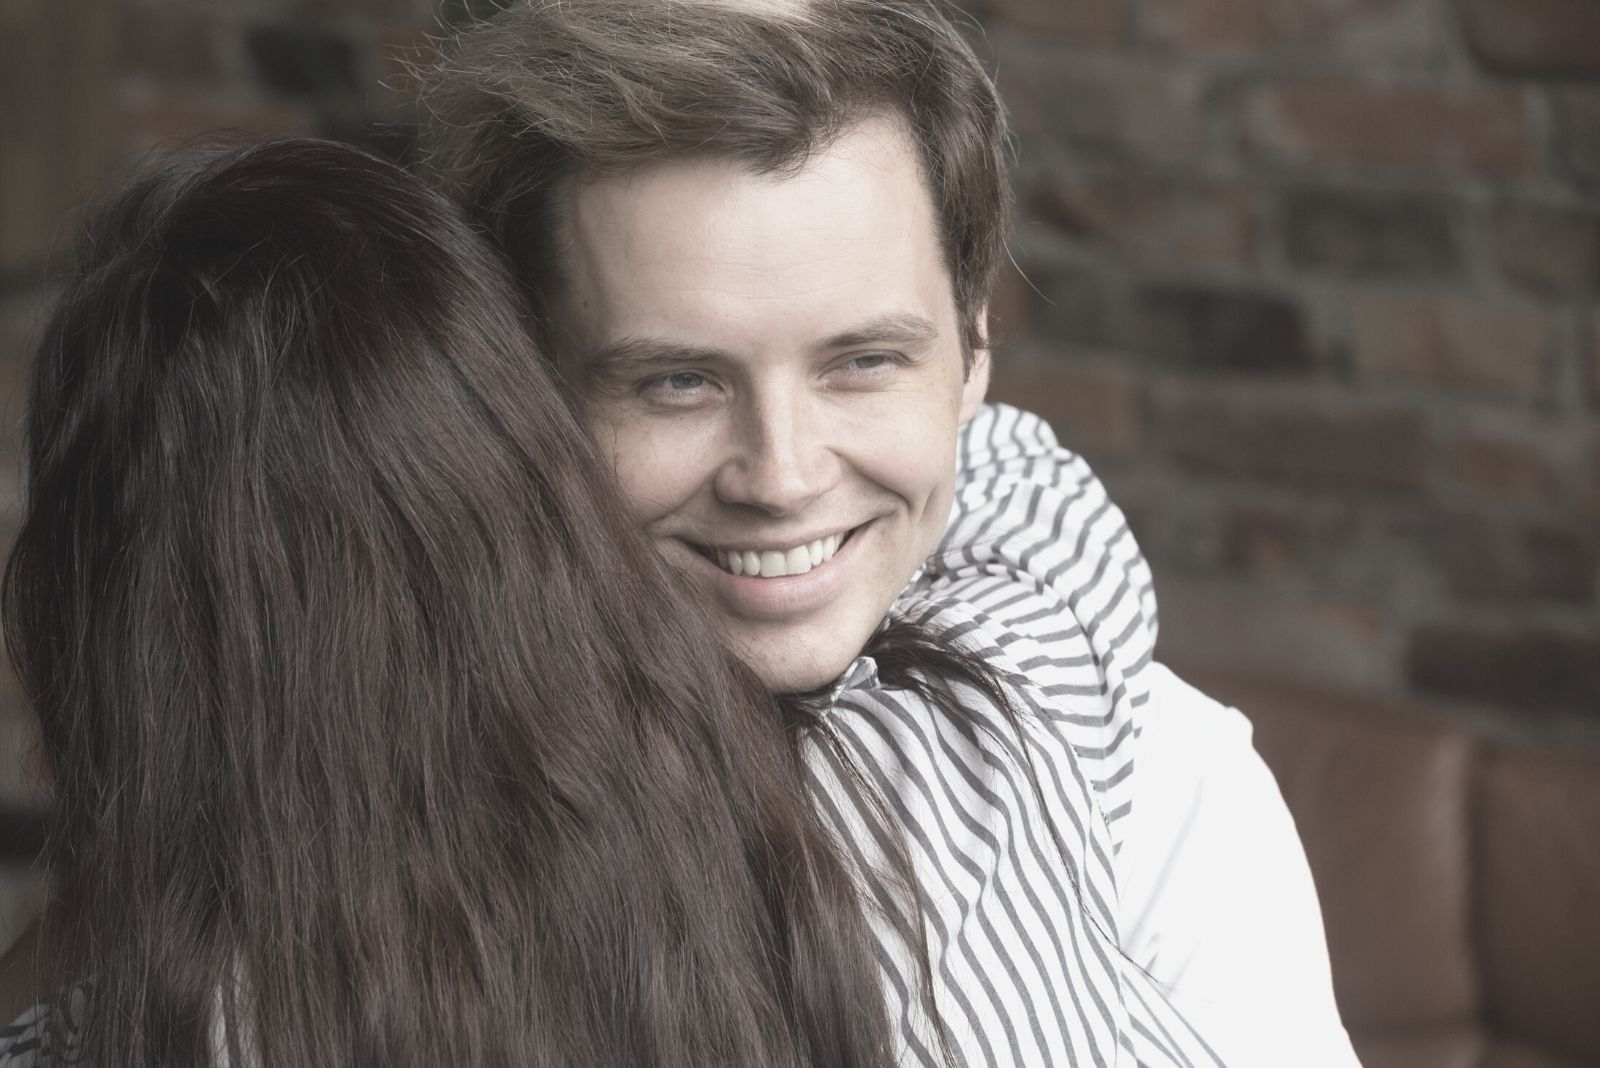 young sly liar man happily smiling embraced by a woman